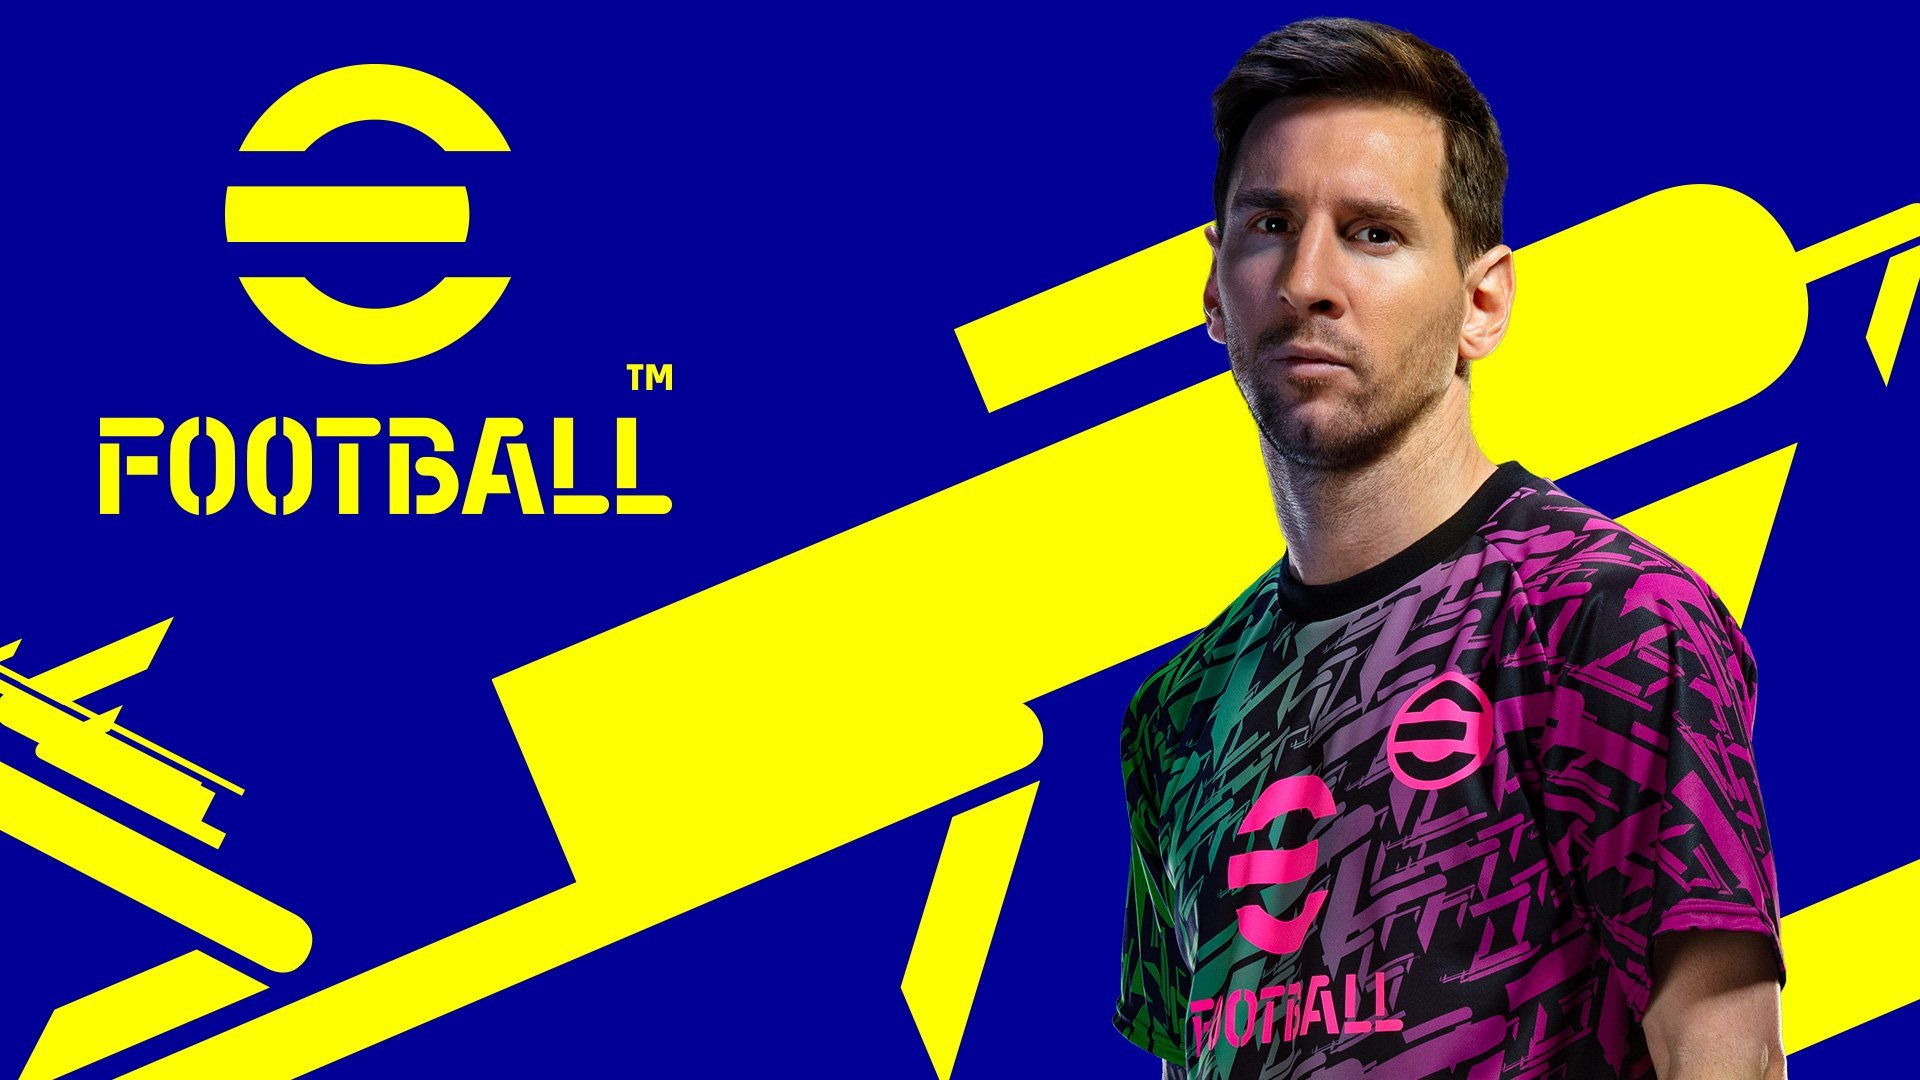 eFootball 2022 is Coming to Xbox Series X/S and Xbox One